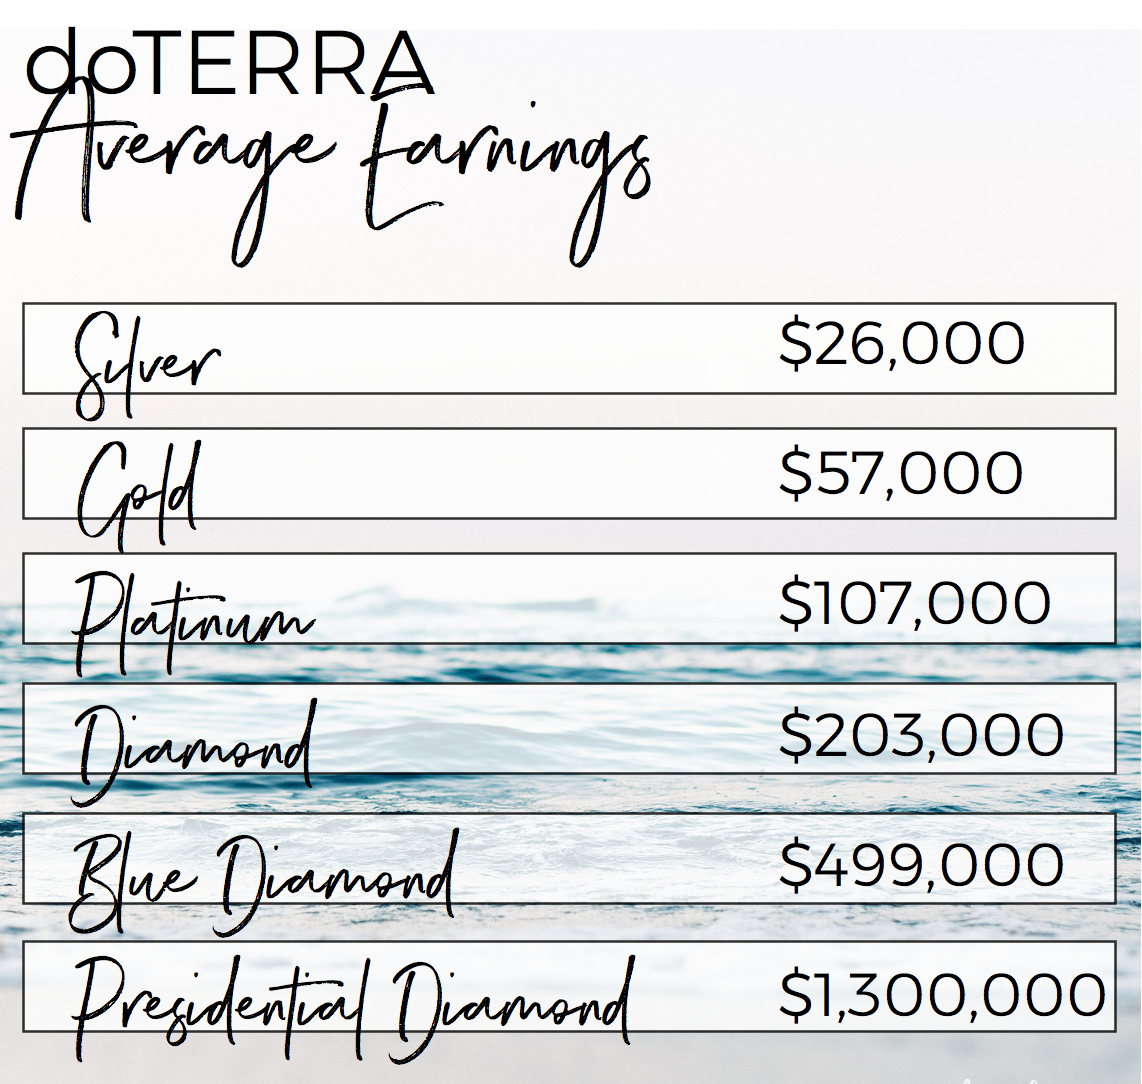 doterra average earnings.png